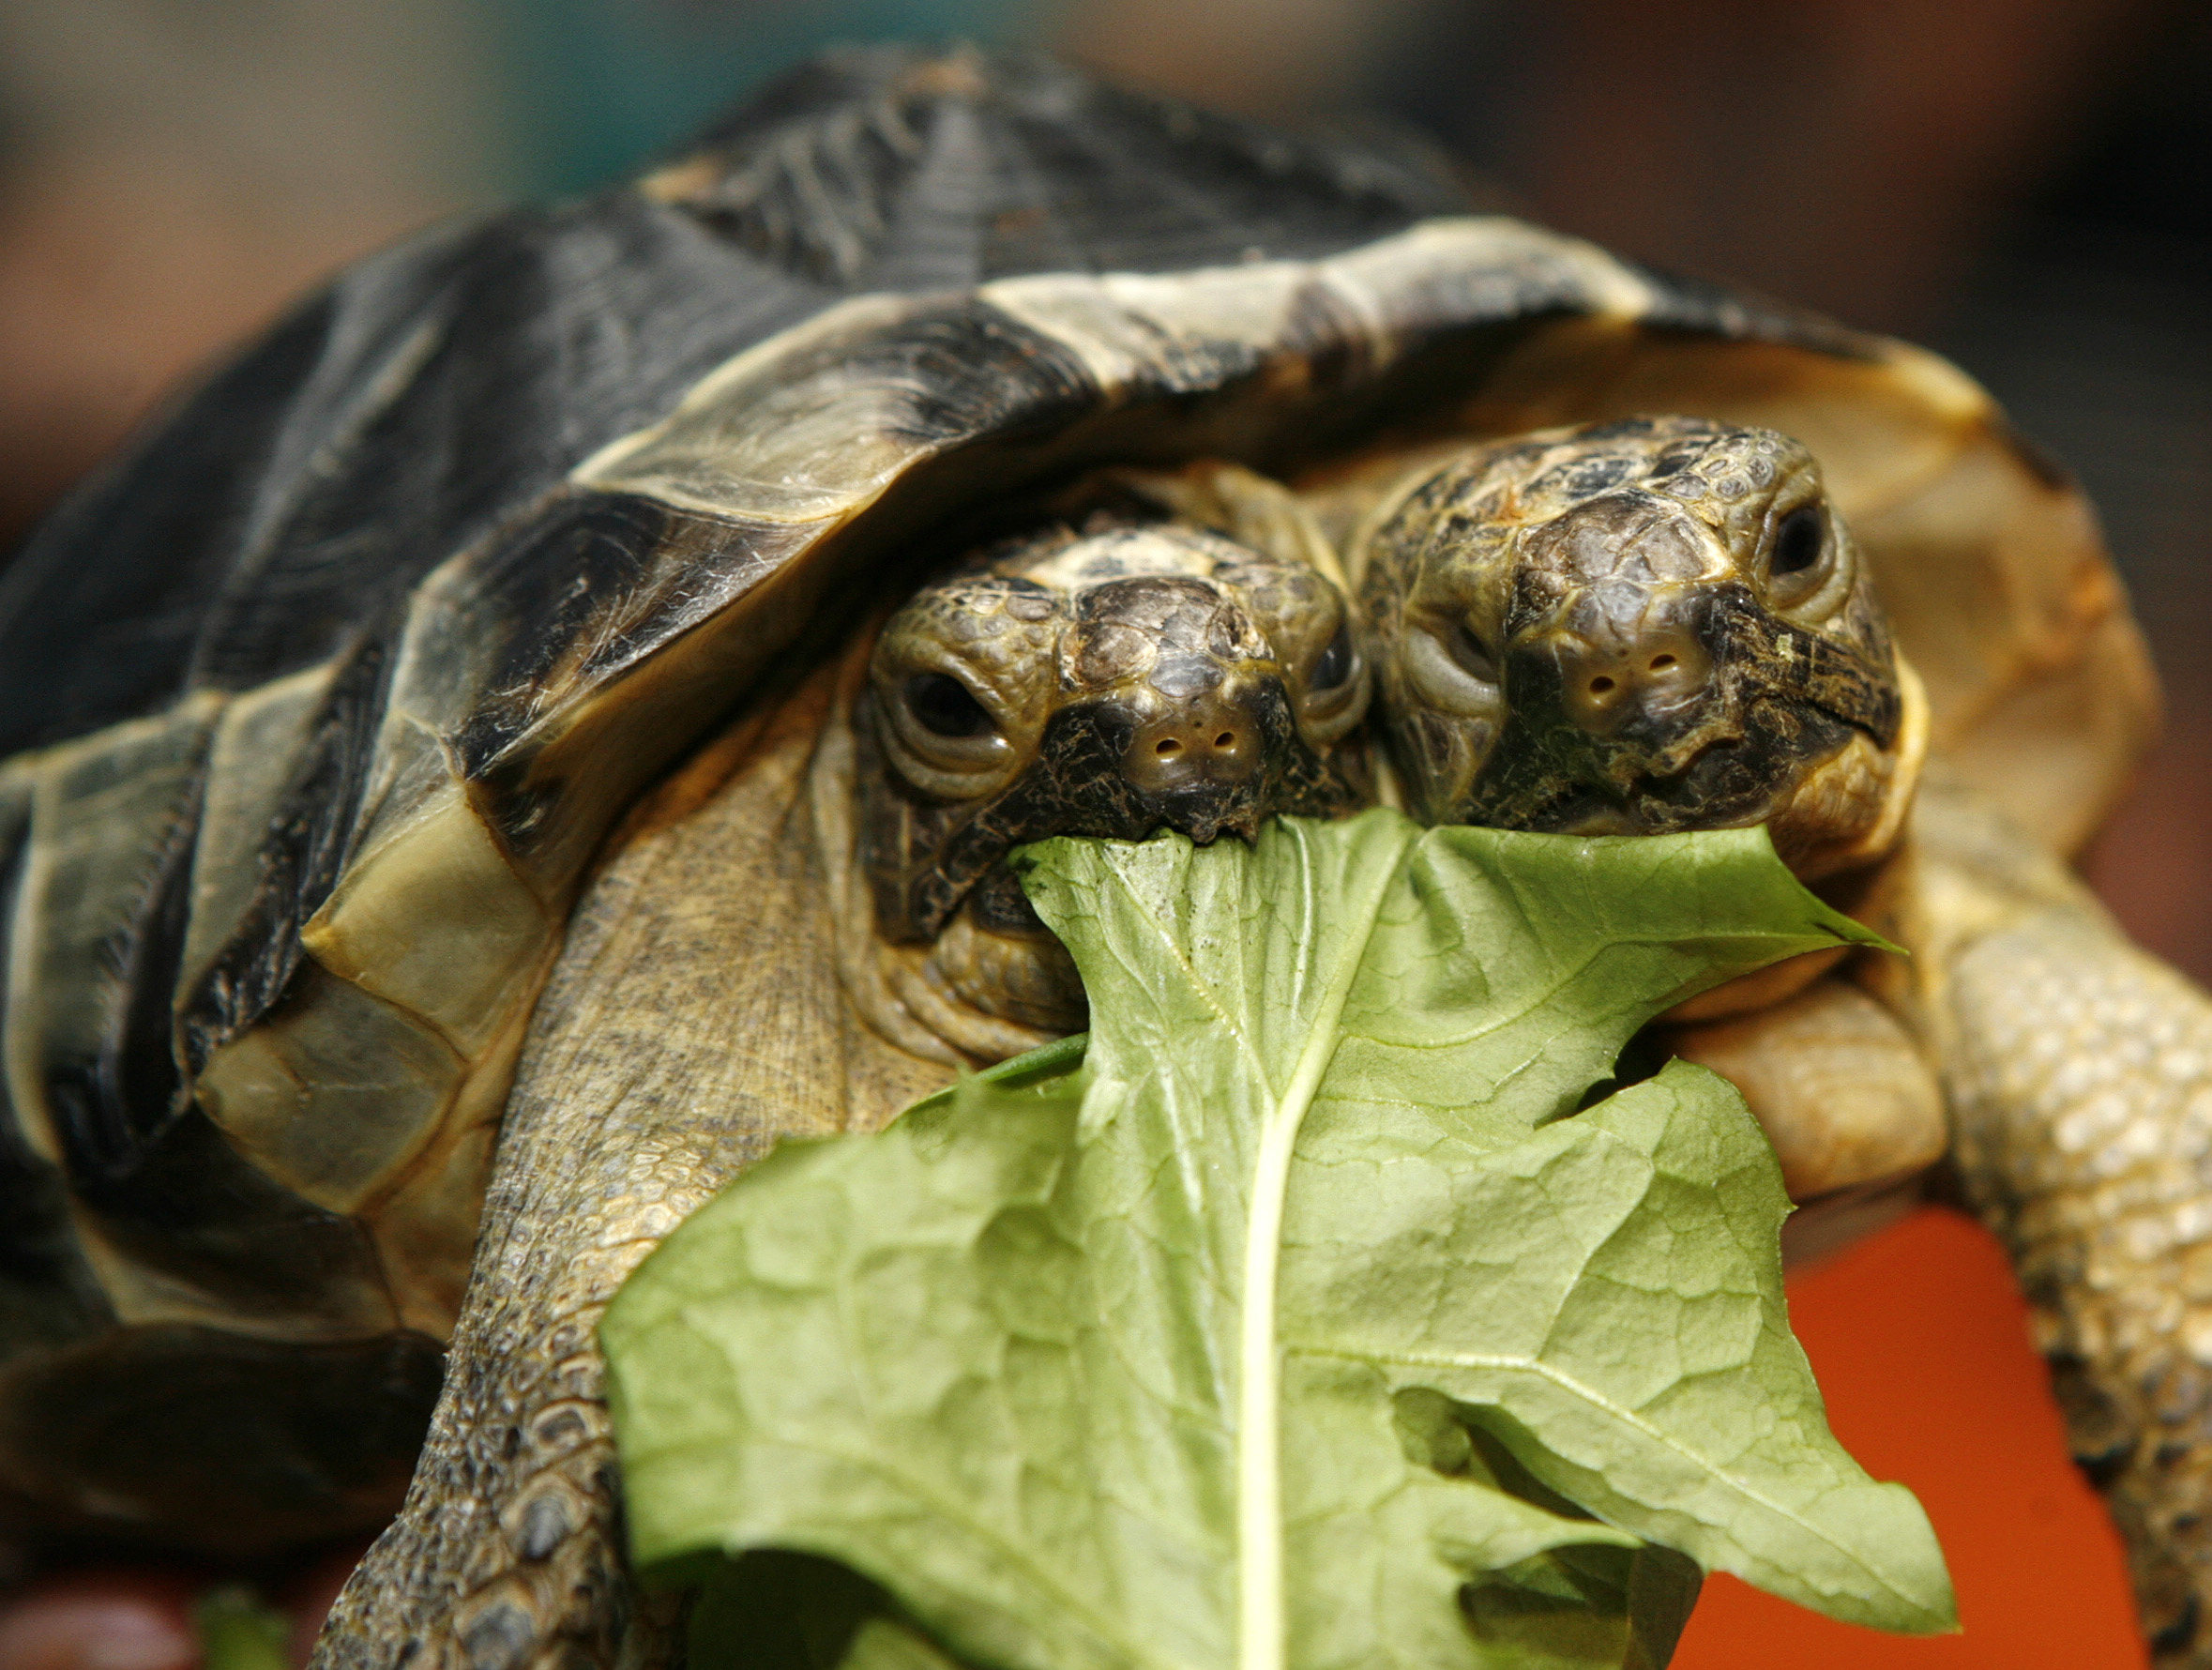 A two-headed Greek turtle named Janus eats some salad leaves at the Natural History Museum in Geneva September 5, 2007. Janus, named after the Roman god with two heads, officially celebrated its 10th birthday on Wednesday.   REUTERS/Denis Balibouse   (SWITZERLAND) - BM2DWBWKMIAA